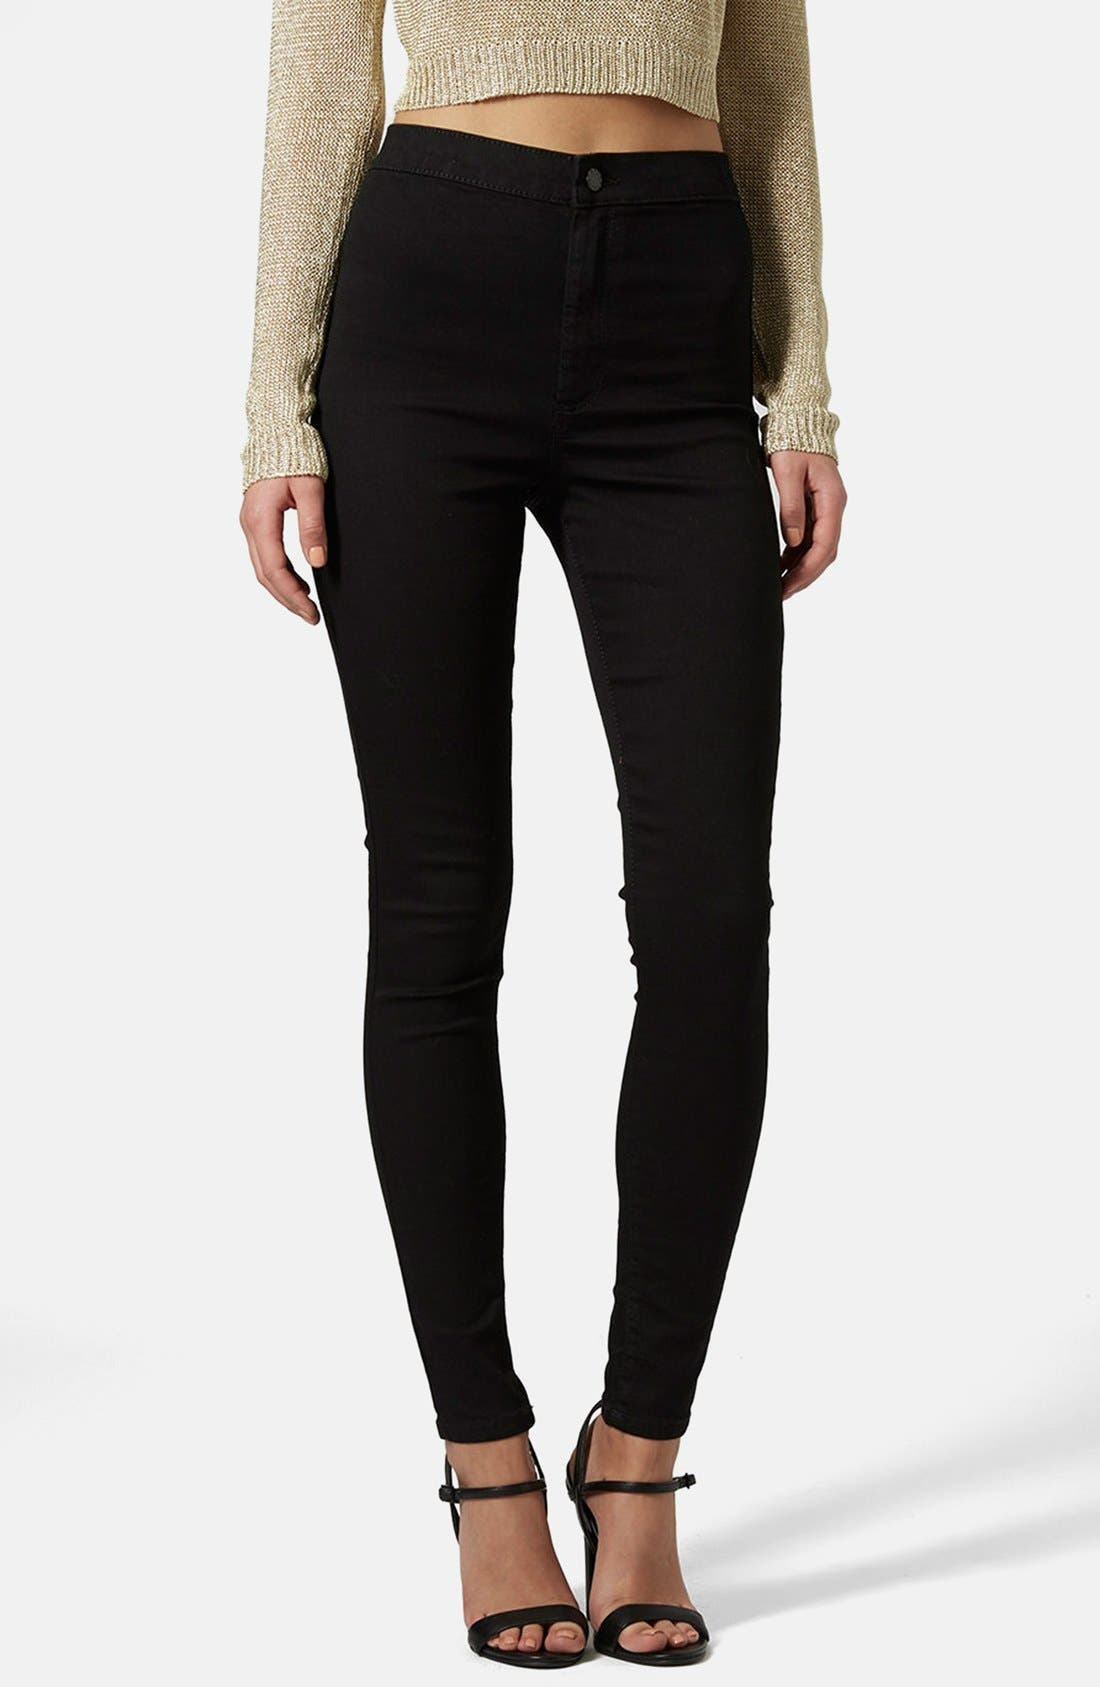 Alternate Image 1 Selected - Topshop Joni High Waist Ankle Skinny Jeans